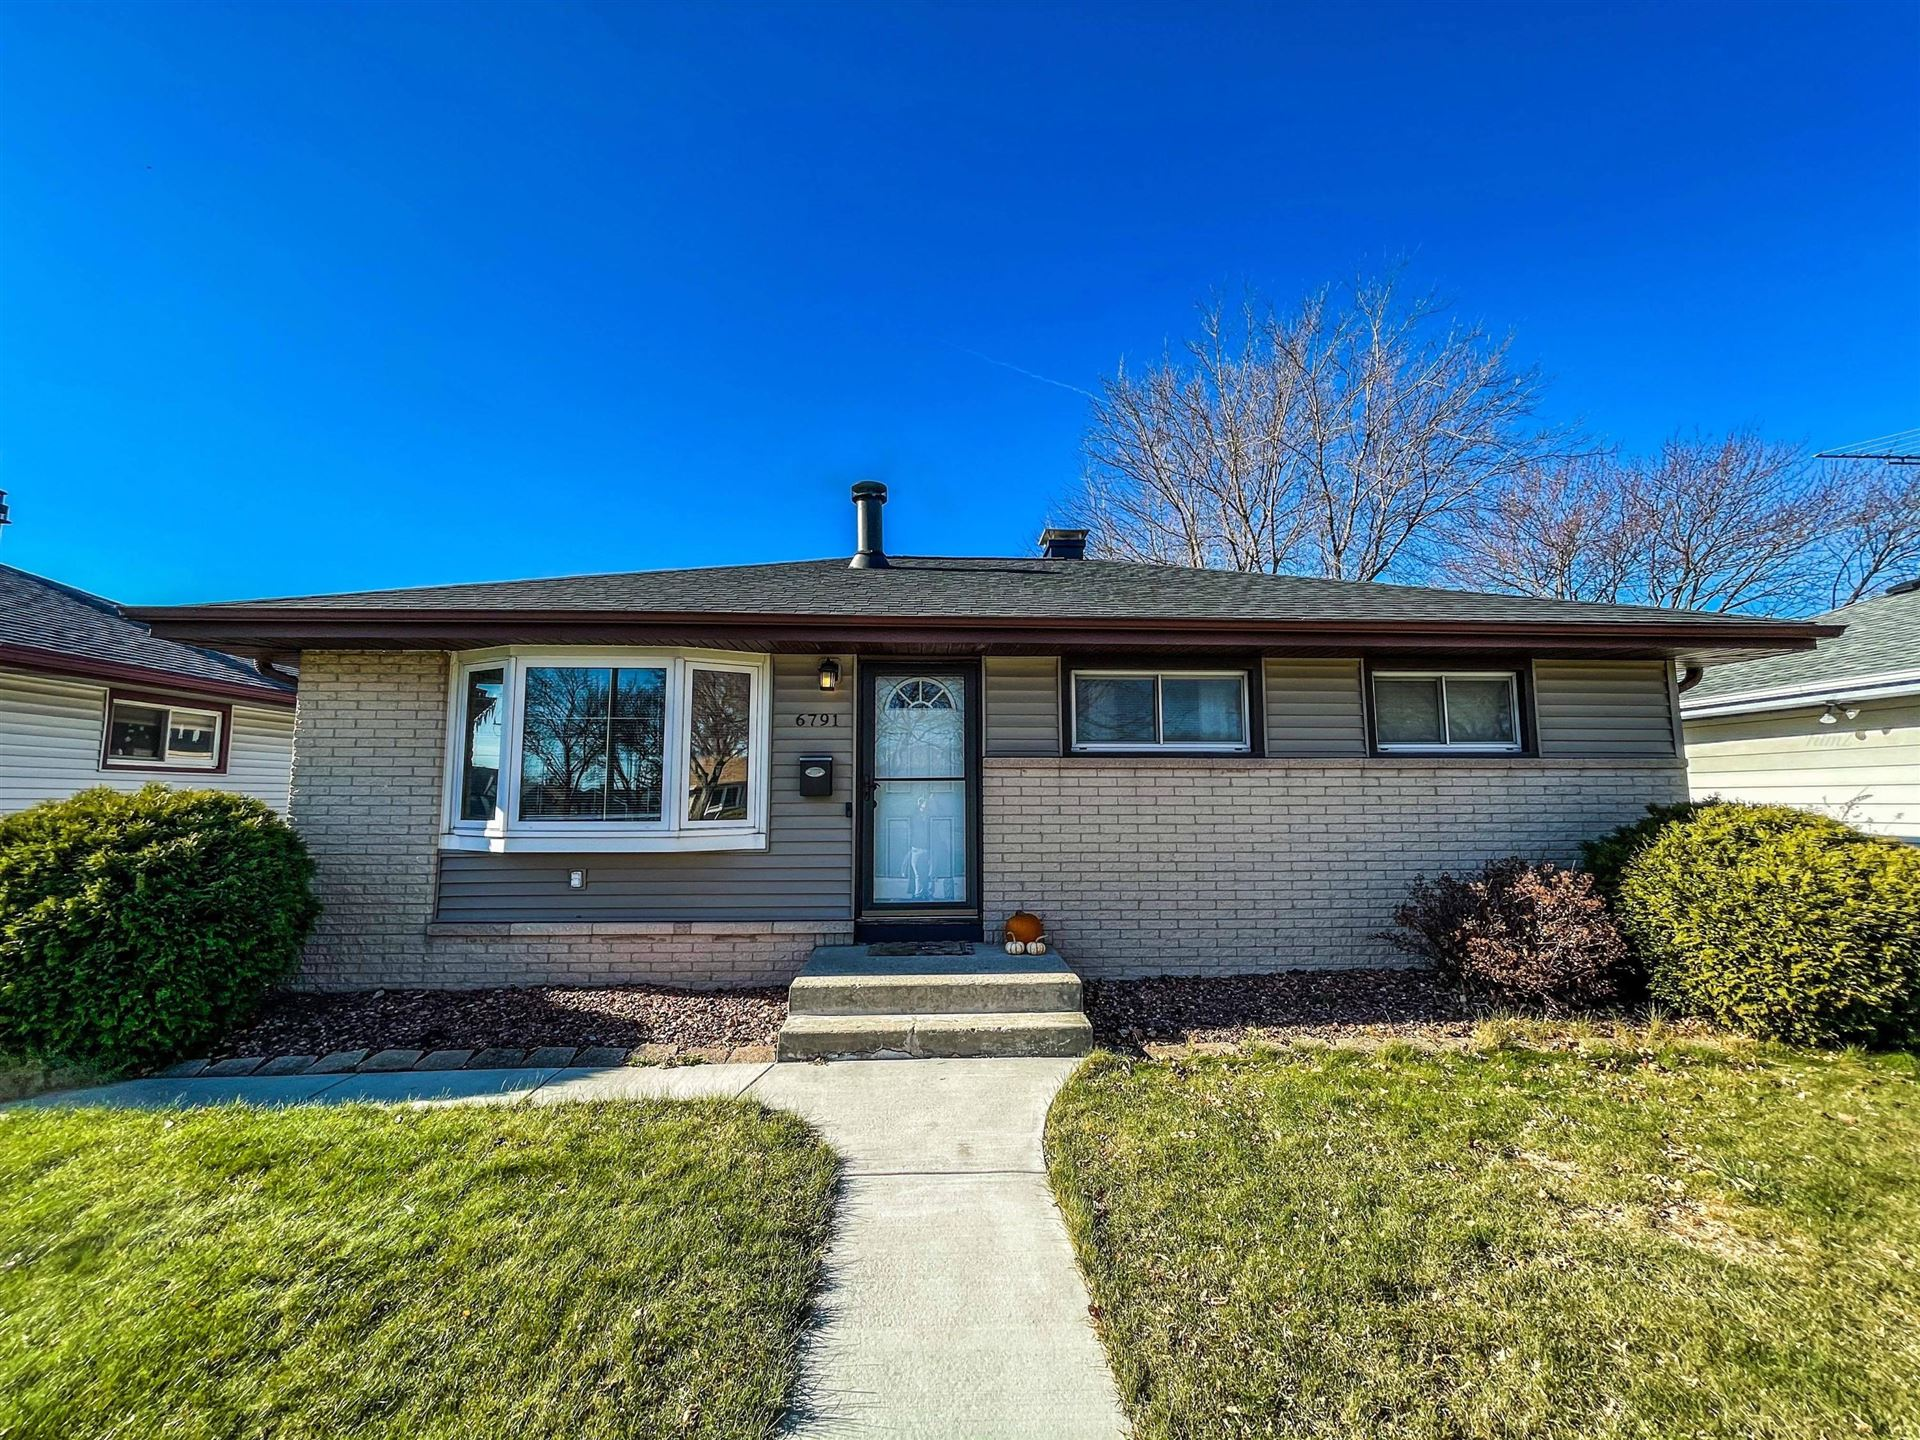 6791 S 19th St, Milwaukee, WI 53221 - #: 1719080